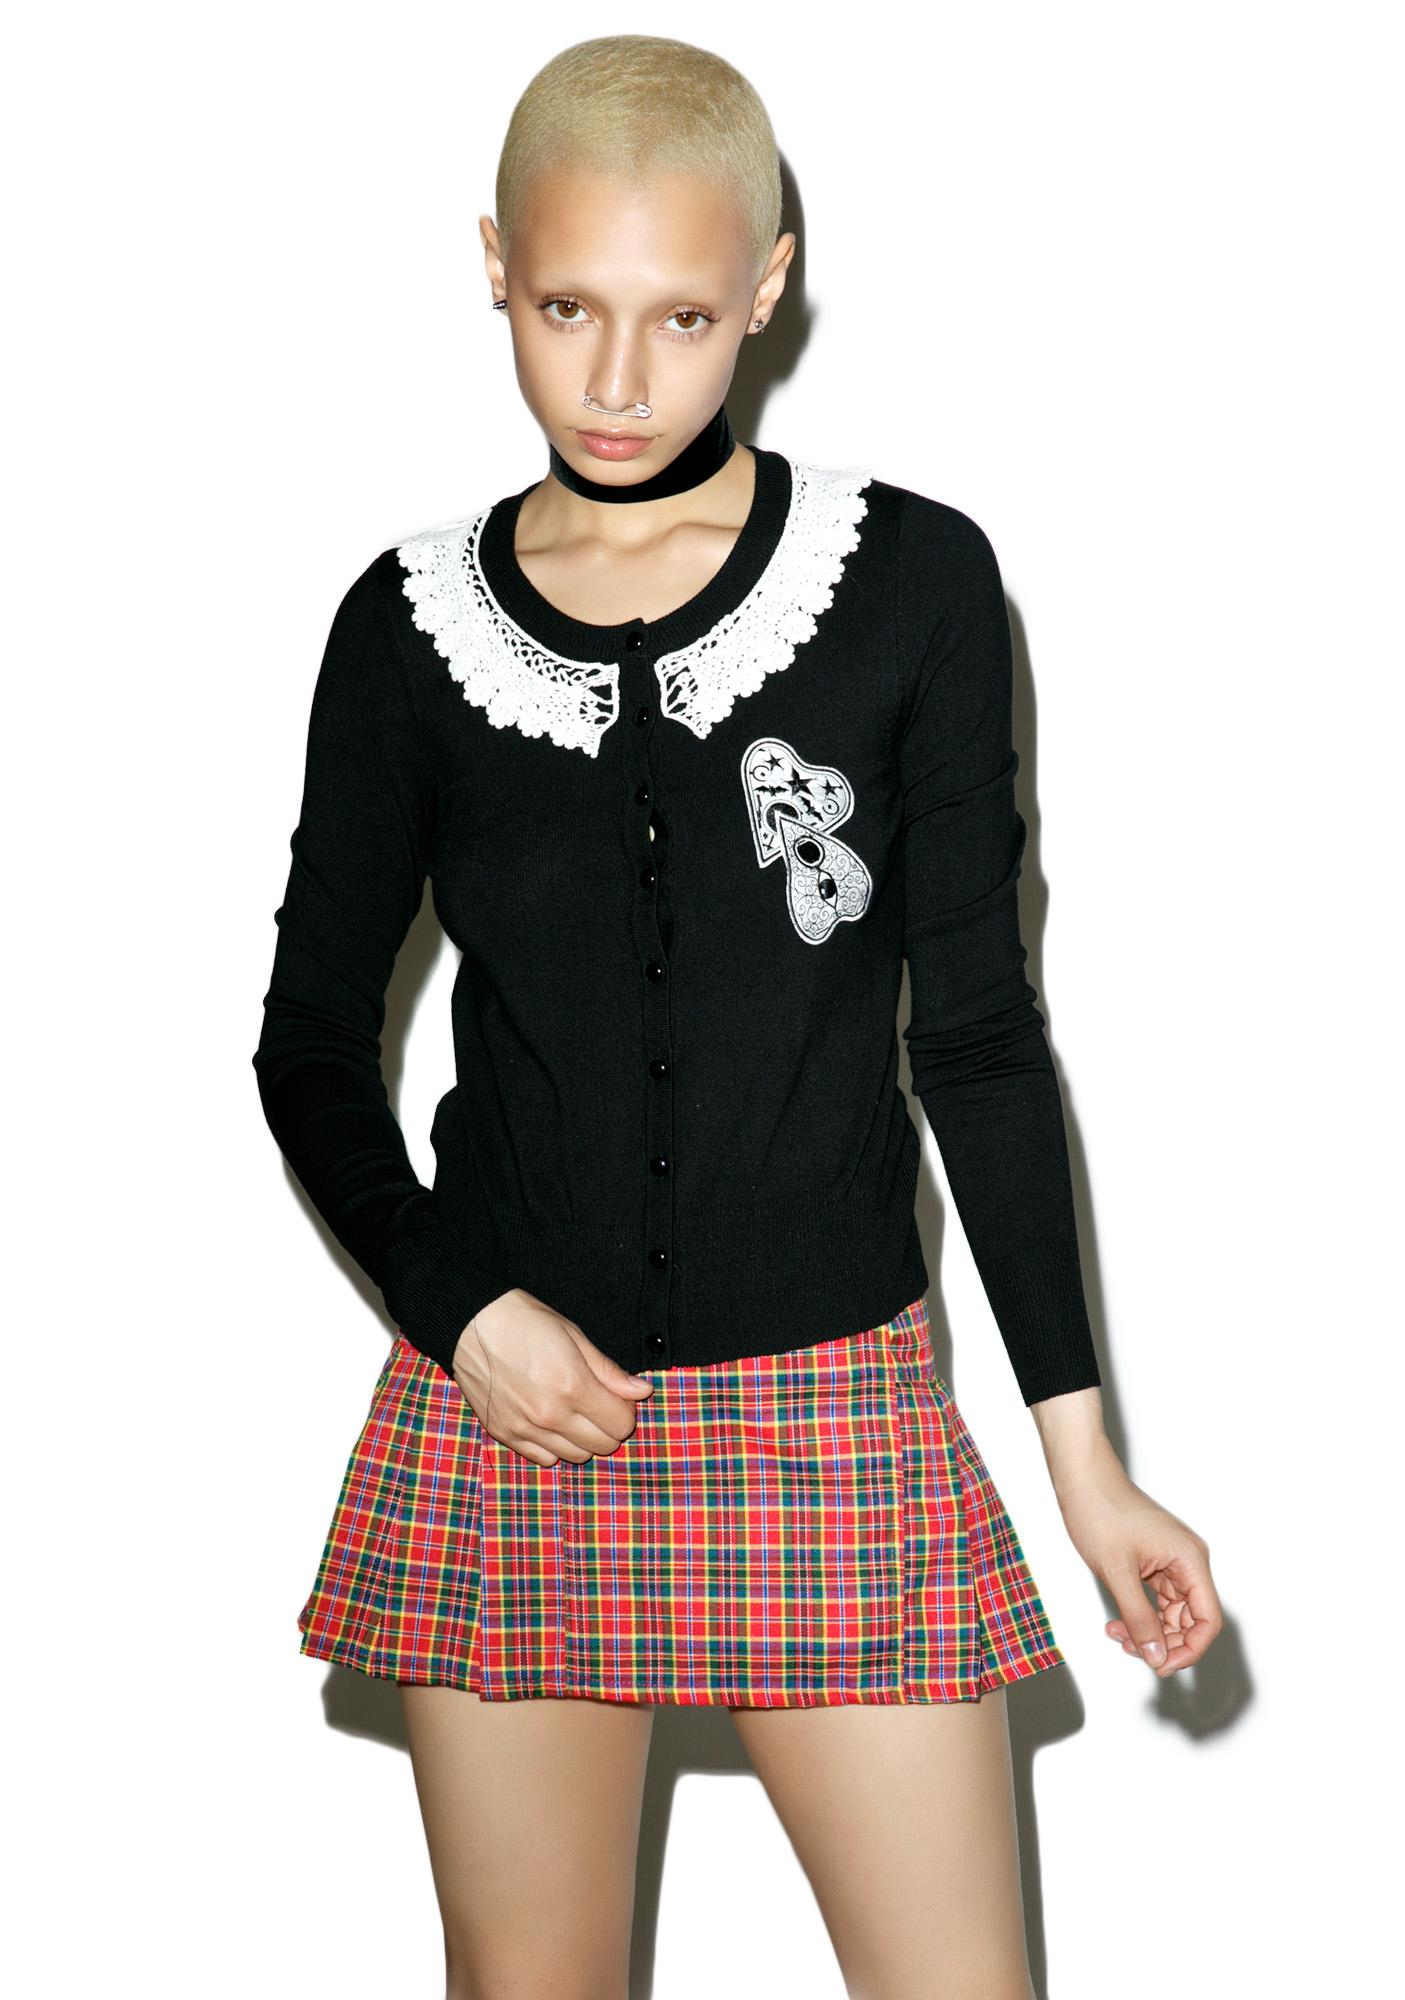 Demonic Games Cardigan